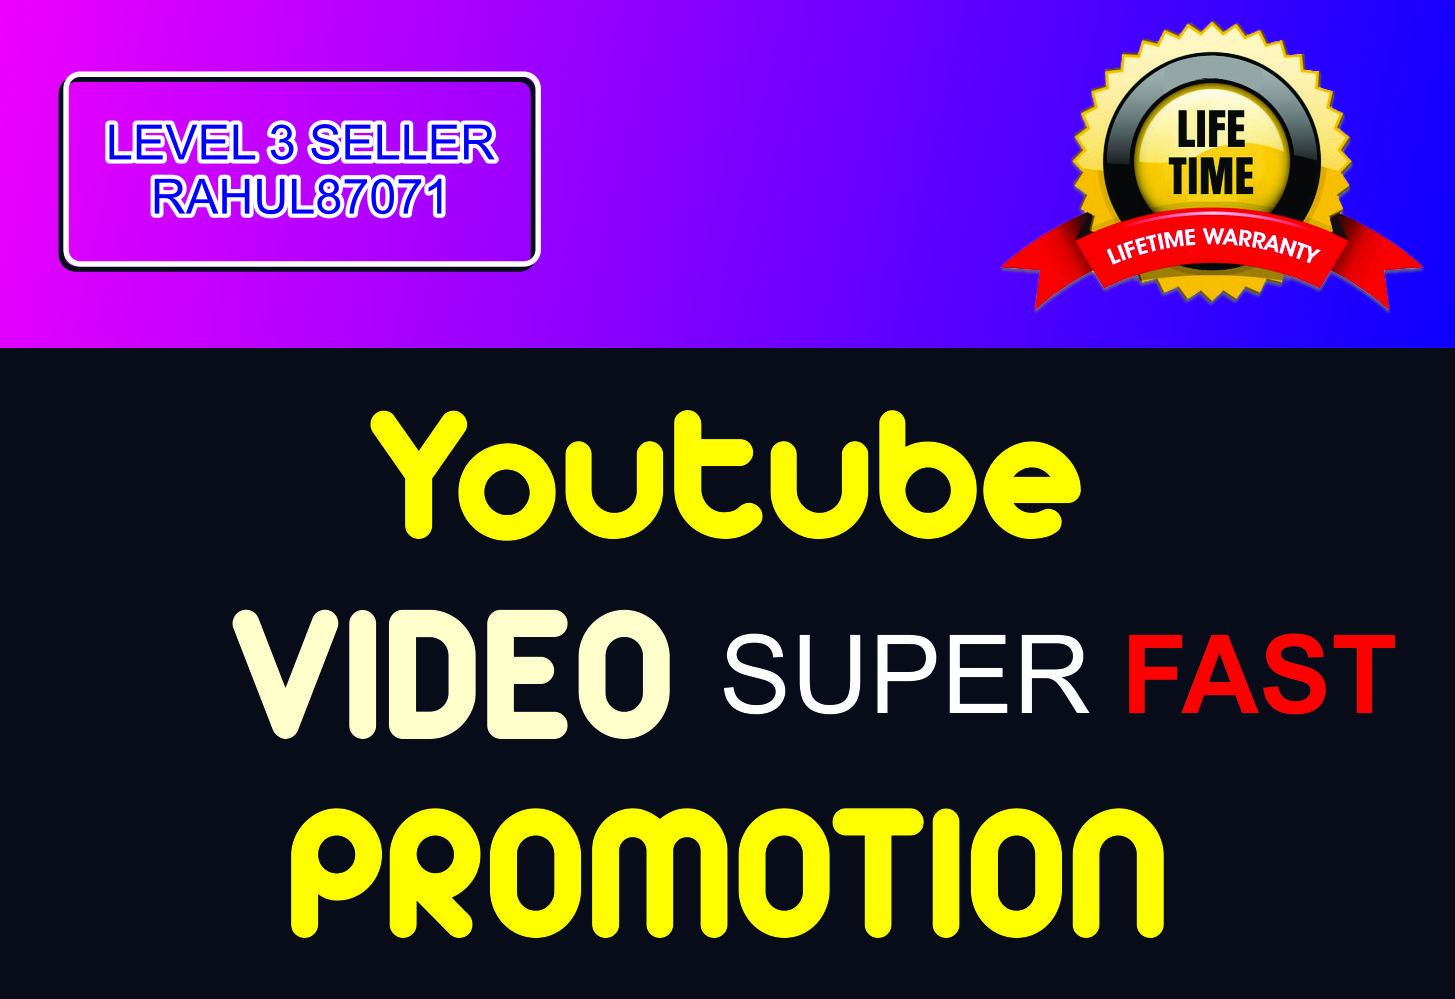 Super Fast HIGH Quality Youtube Video Promotion and Marketing